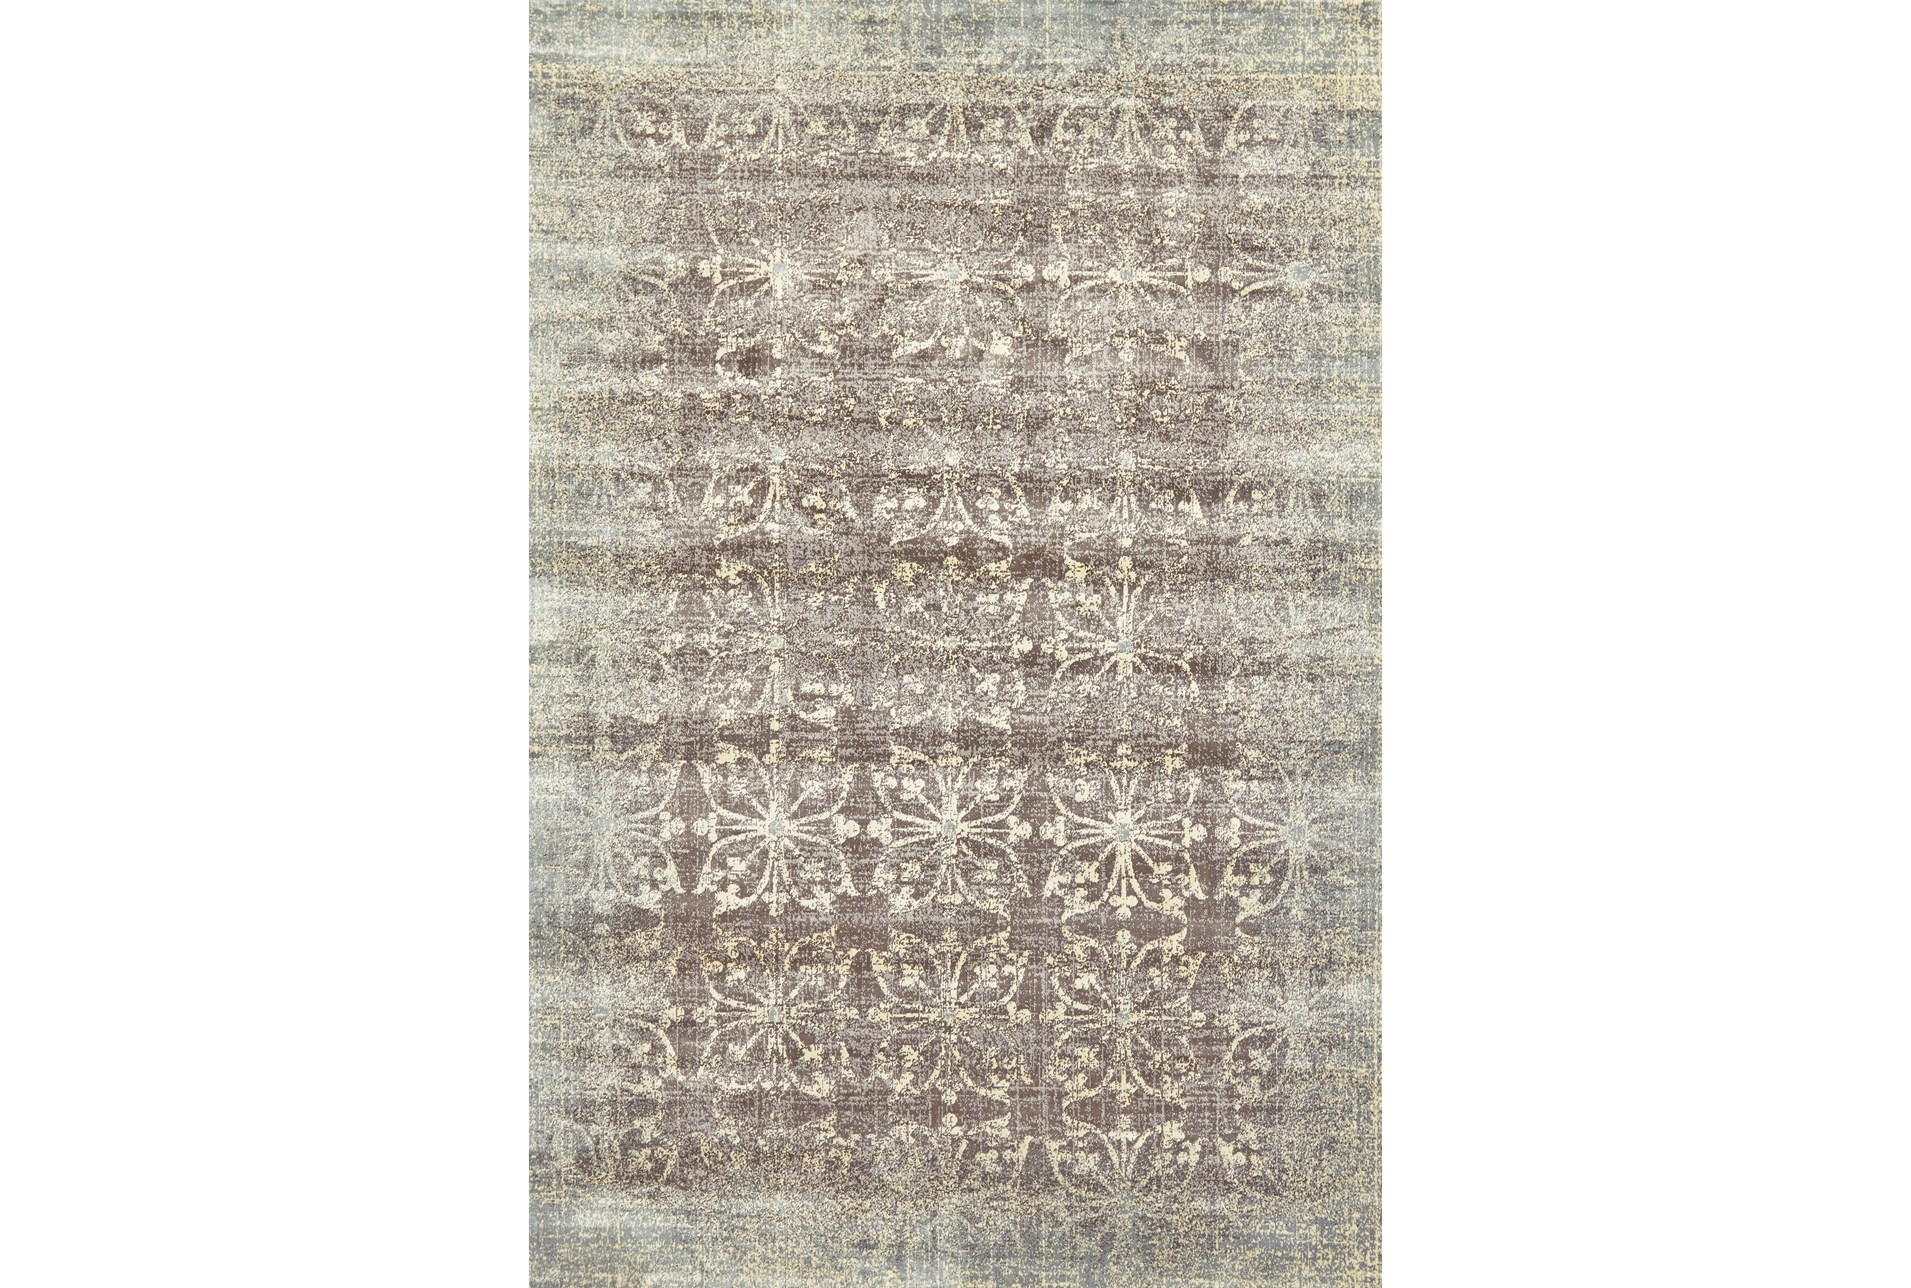 cheap sofa rugs on in home of patterned color rug blue shag miraculous pretty combined snazzy area decor and room floor amazing pattern living navy brown round depot with wood matched beige